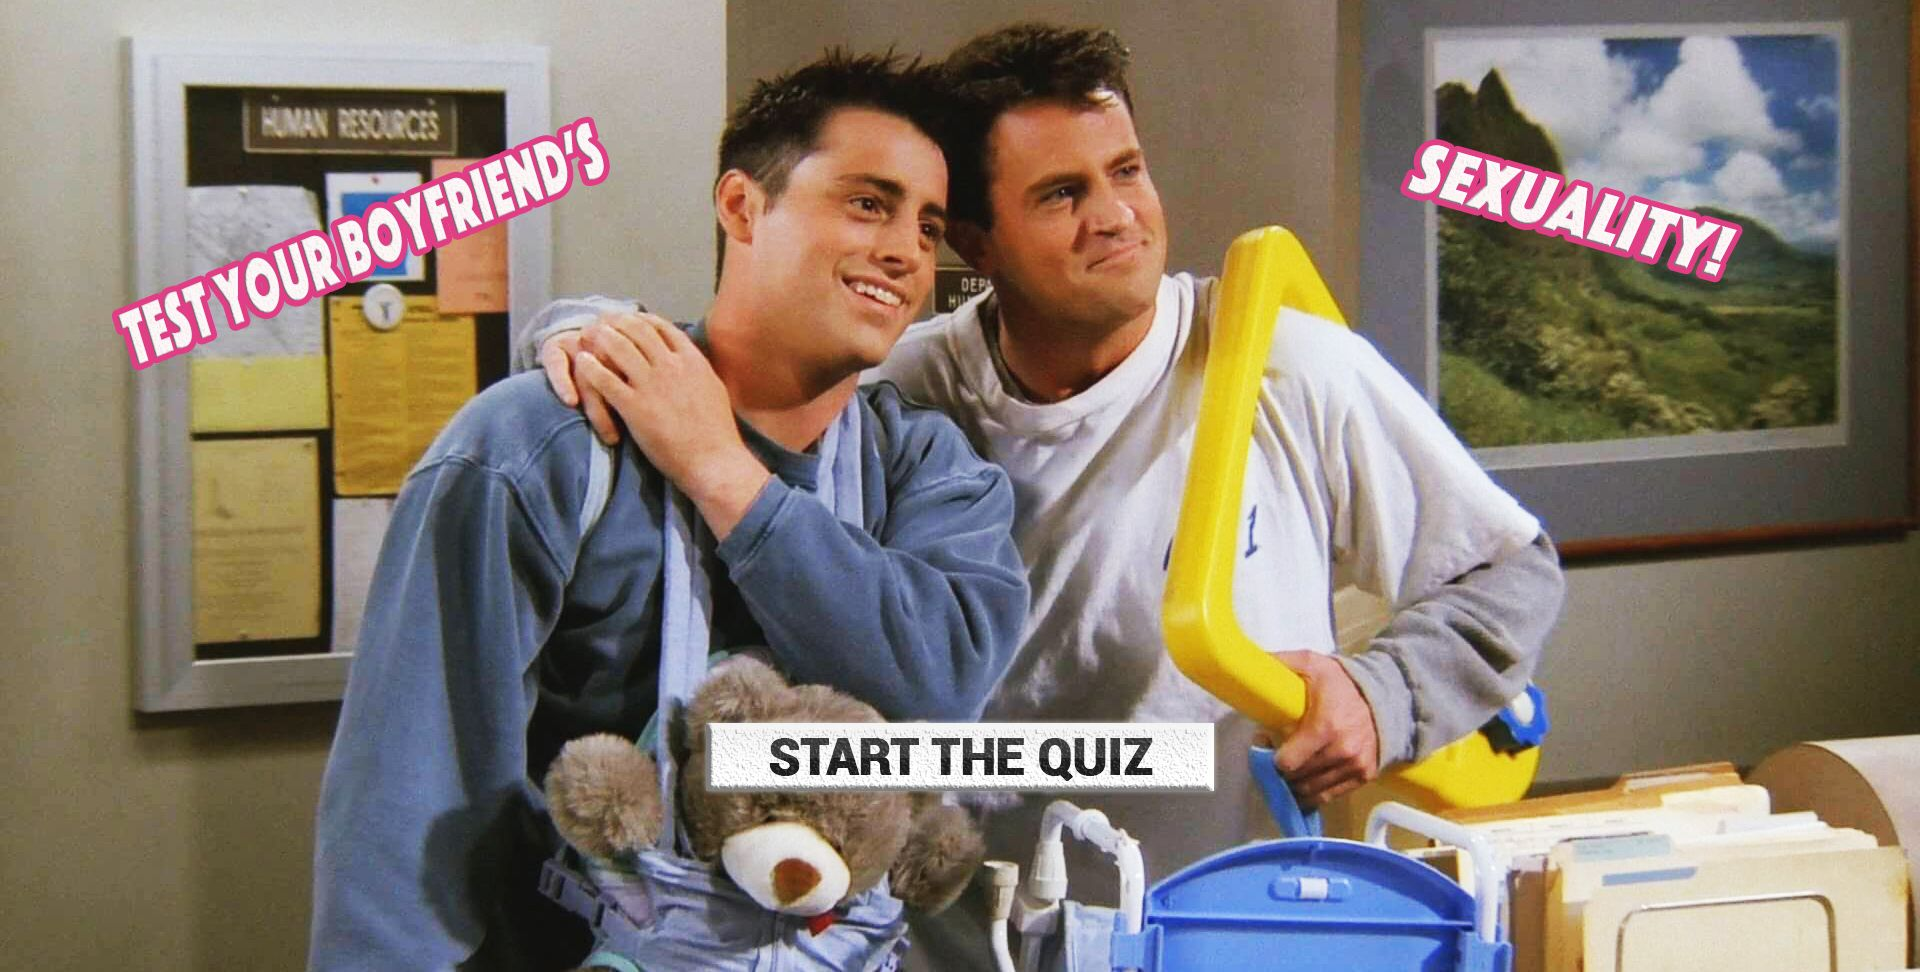 If You're Unsure About Your Boyfriend's Sexuality, Take This Test